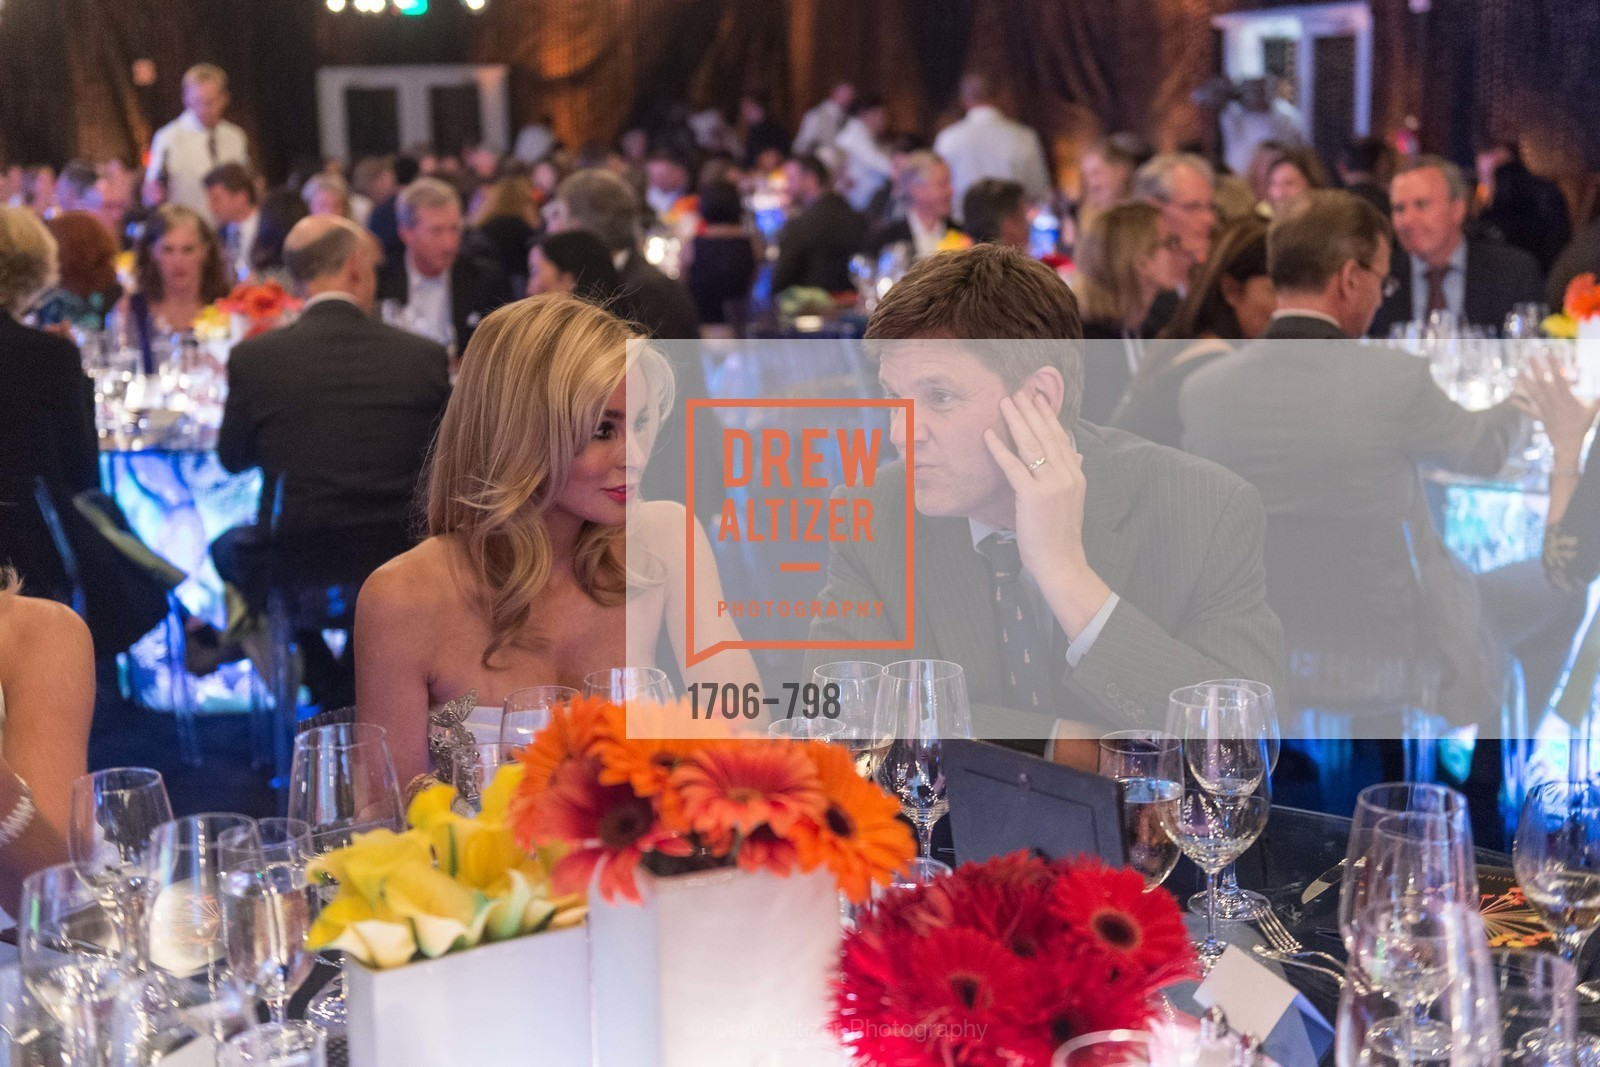 Paula Carano, Bill Duhamel, CALIFORNIA ACADEMY OF SCIENCES - Big Bang Gala 2015, US, April 24th, 2015,Drew Altizer, Drew Altizer Photography, full-service agency, private events, San Francisco photographer, photographer california